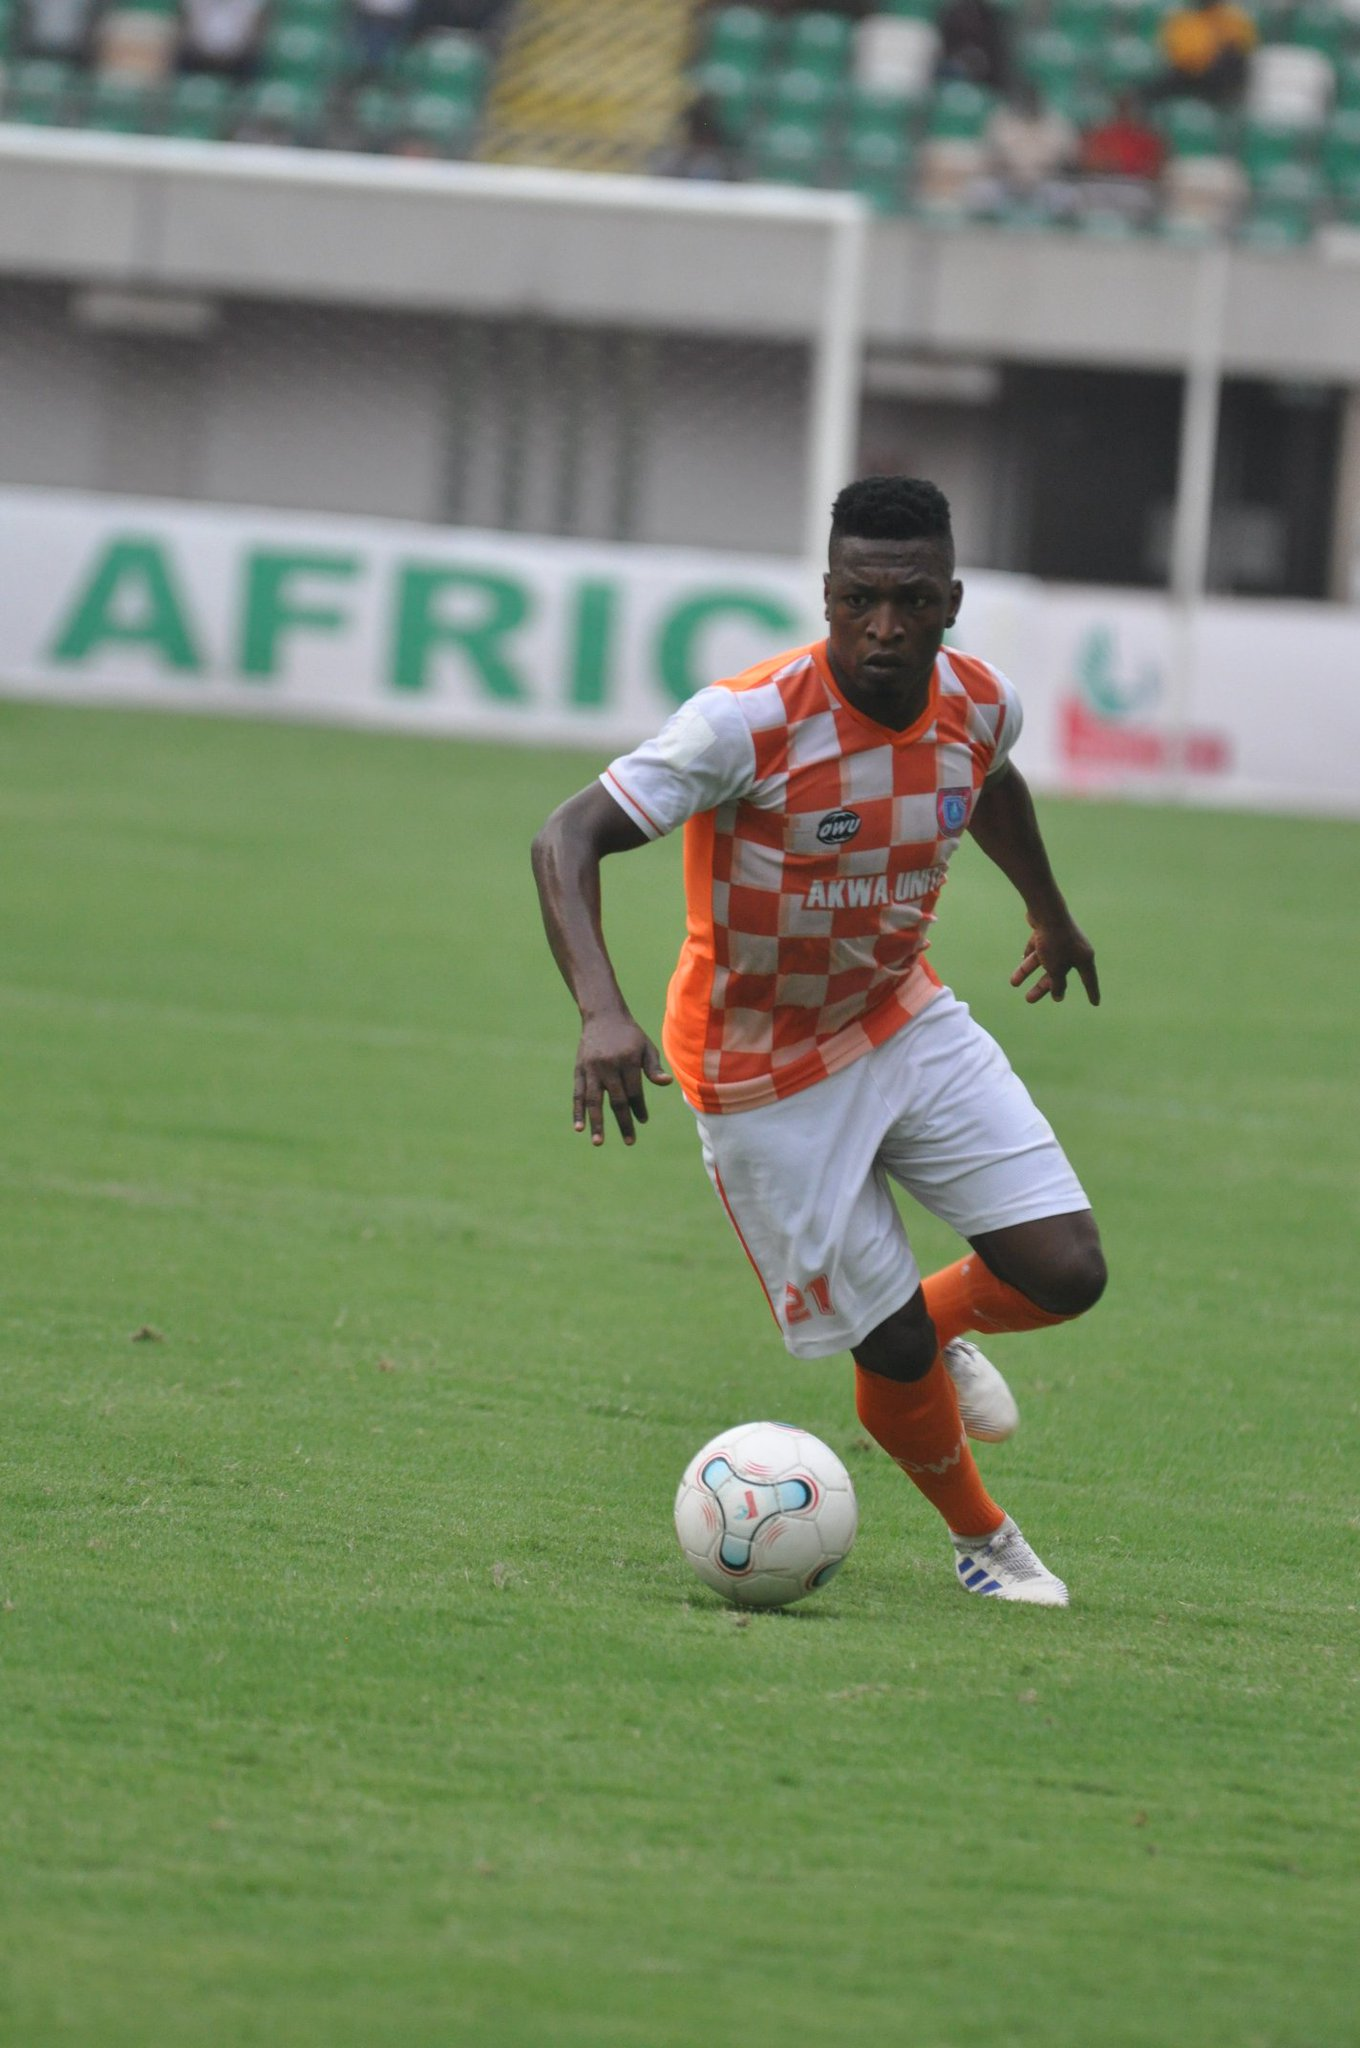 NPFL: Akwa United's Effiong First to reach Double Figures in Battle for Eunisell Boot